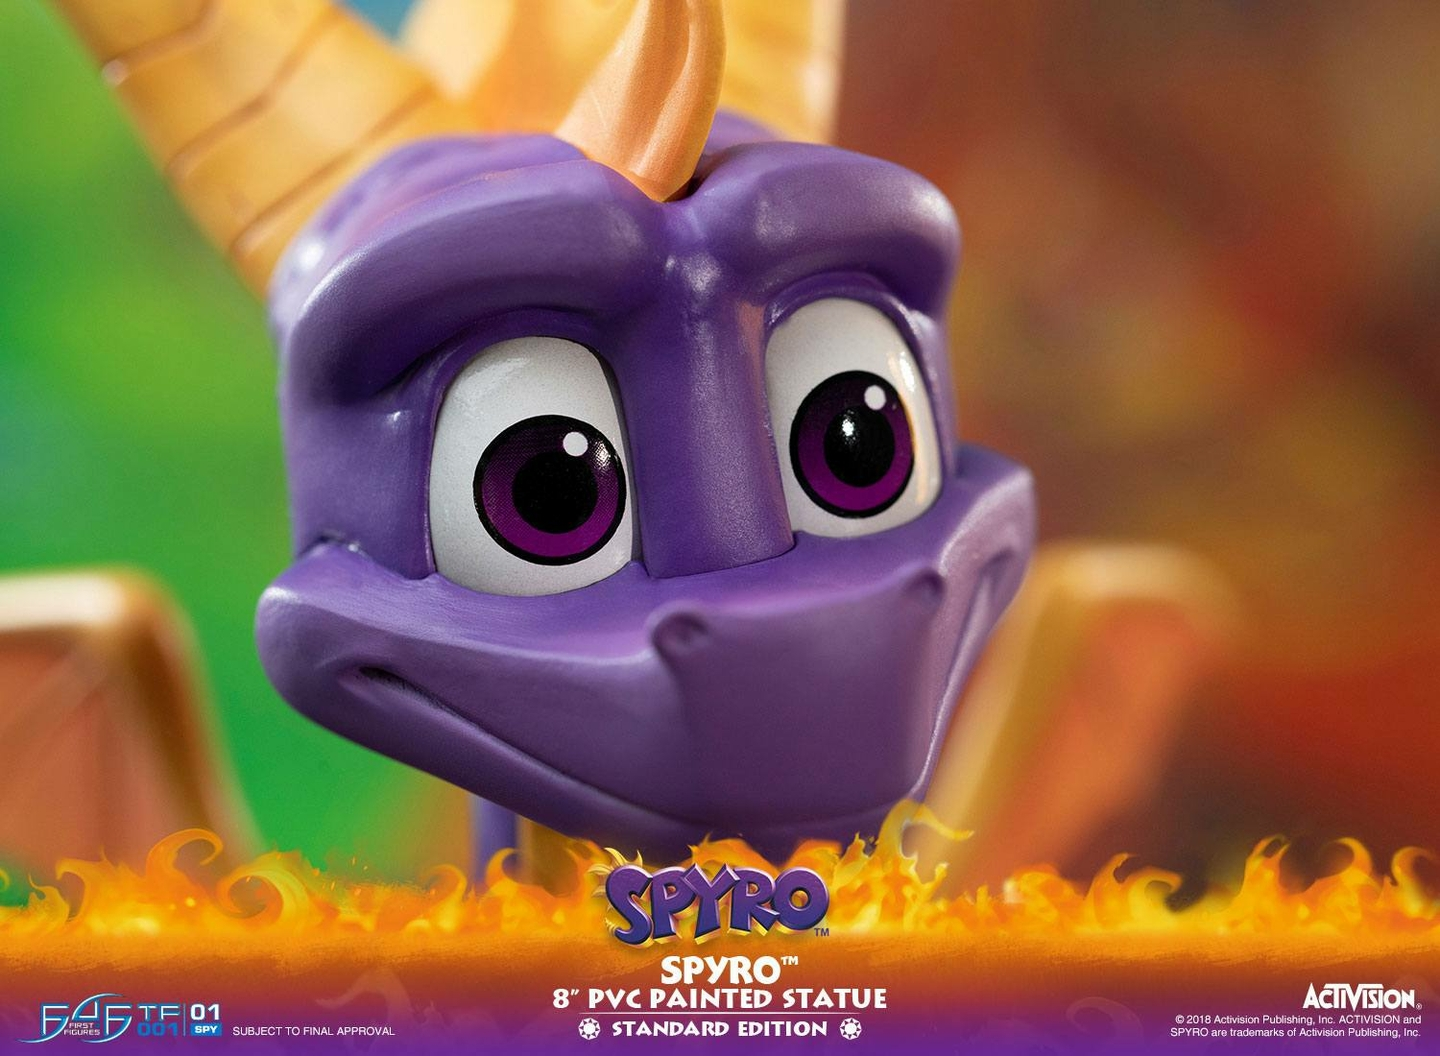 Statuette Spyro the Dragon Spyro 20cm 1001 Figurines (20)